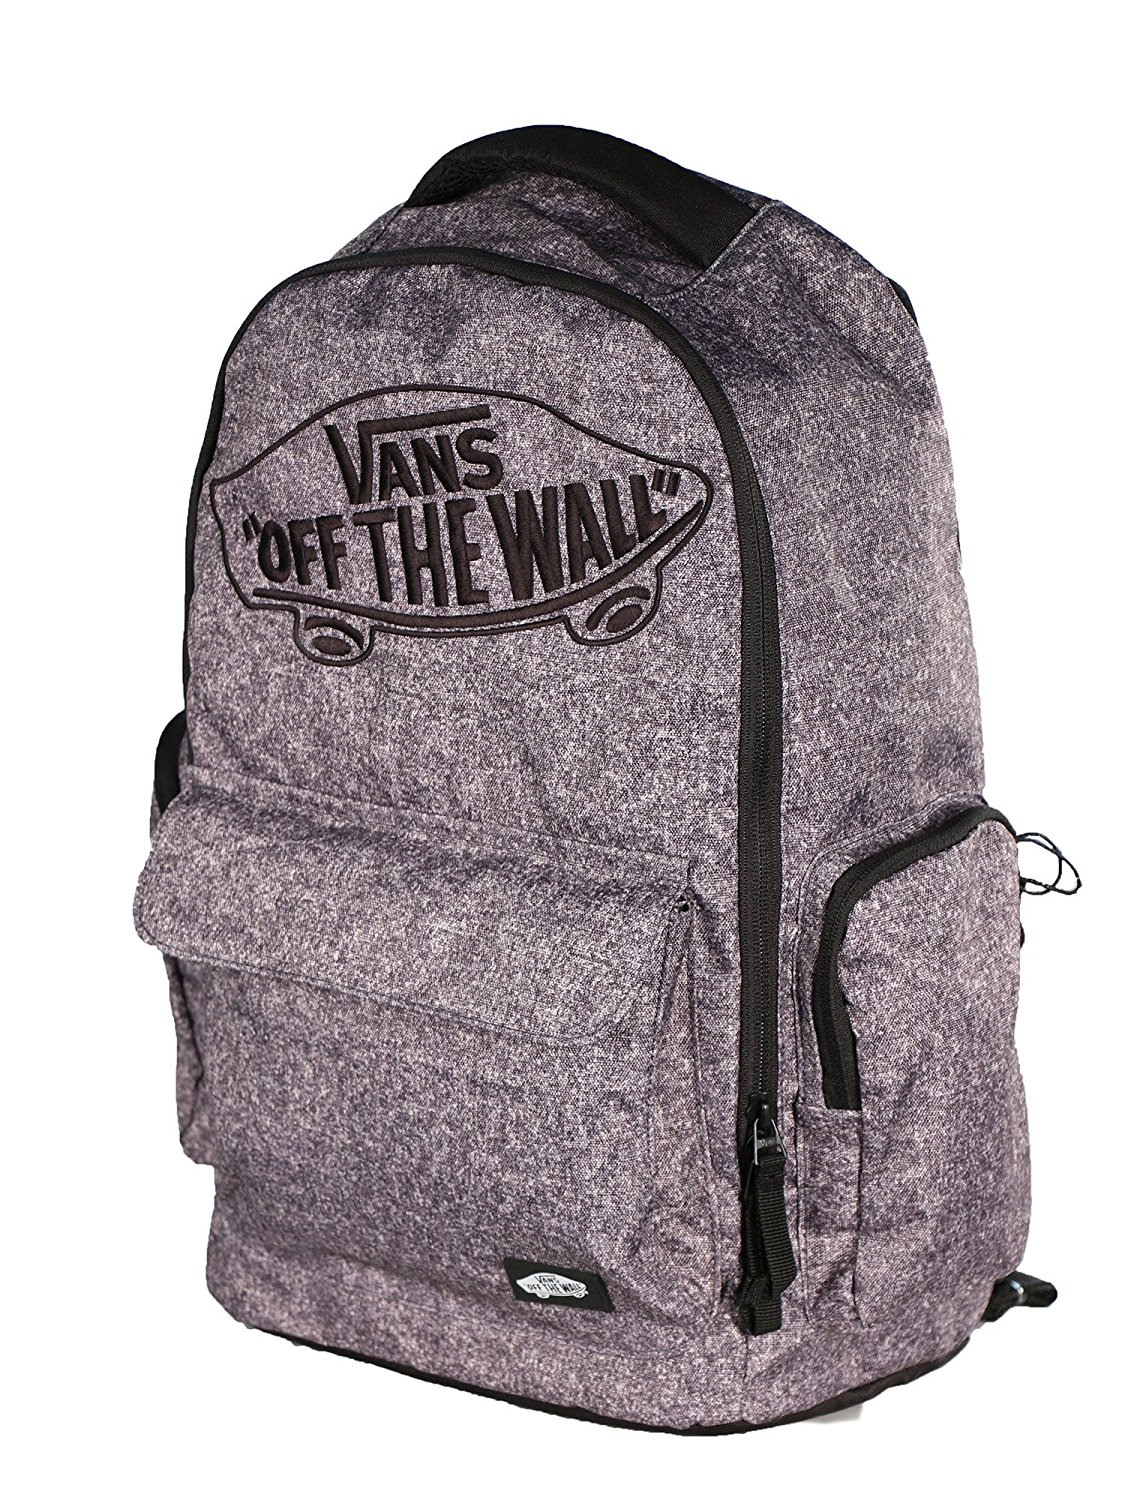 Get Quotations · Vans Off The Wall Underhill 2 Backpack-Gray c82fdb32c51c0